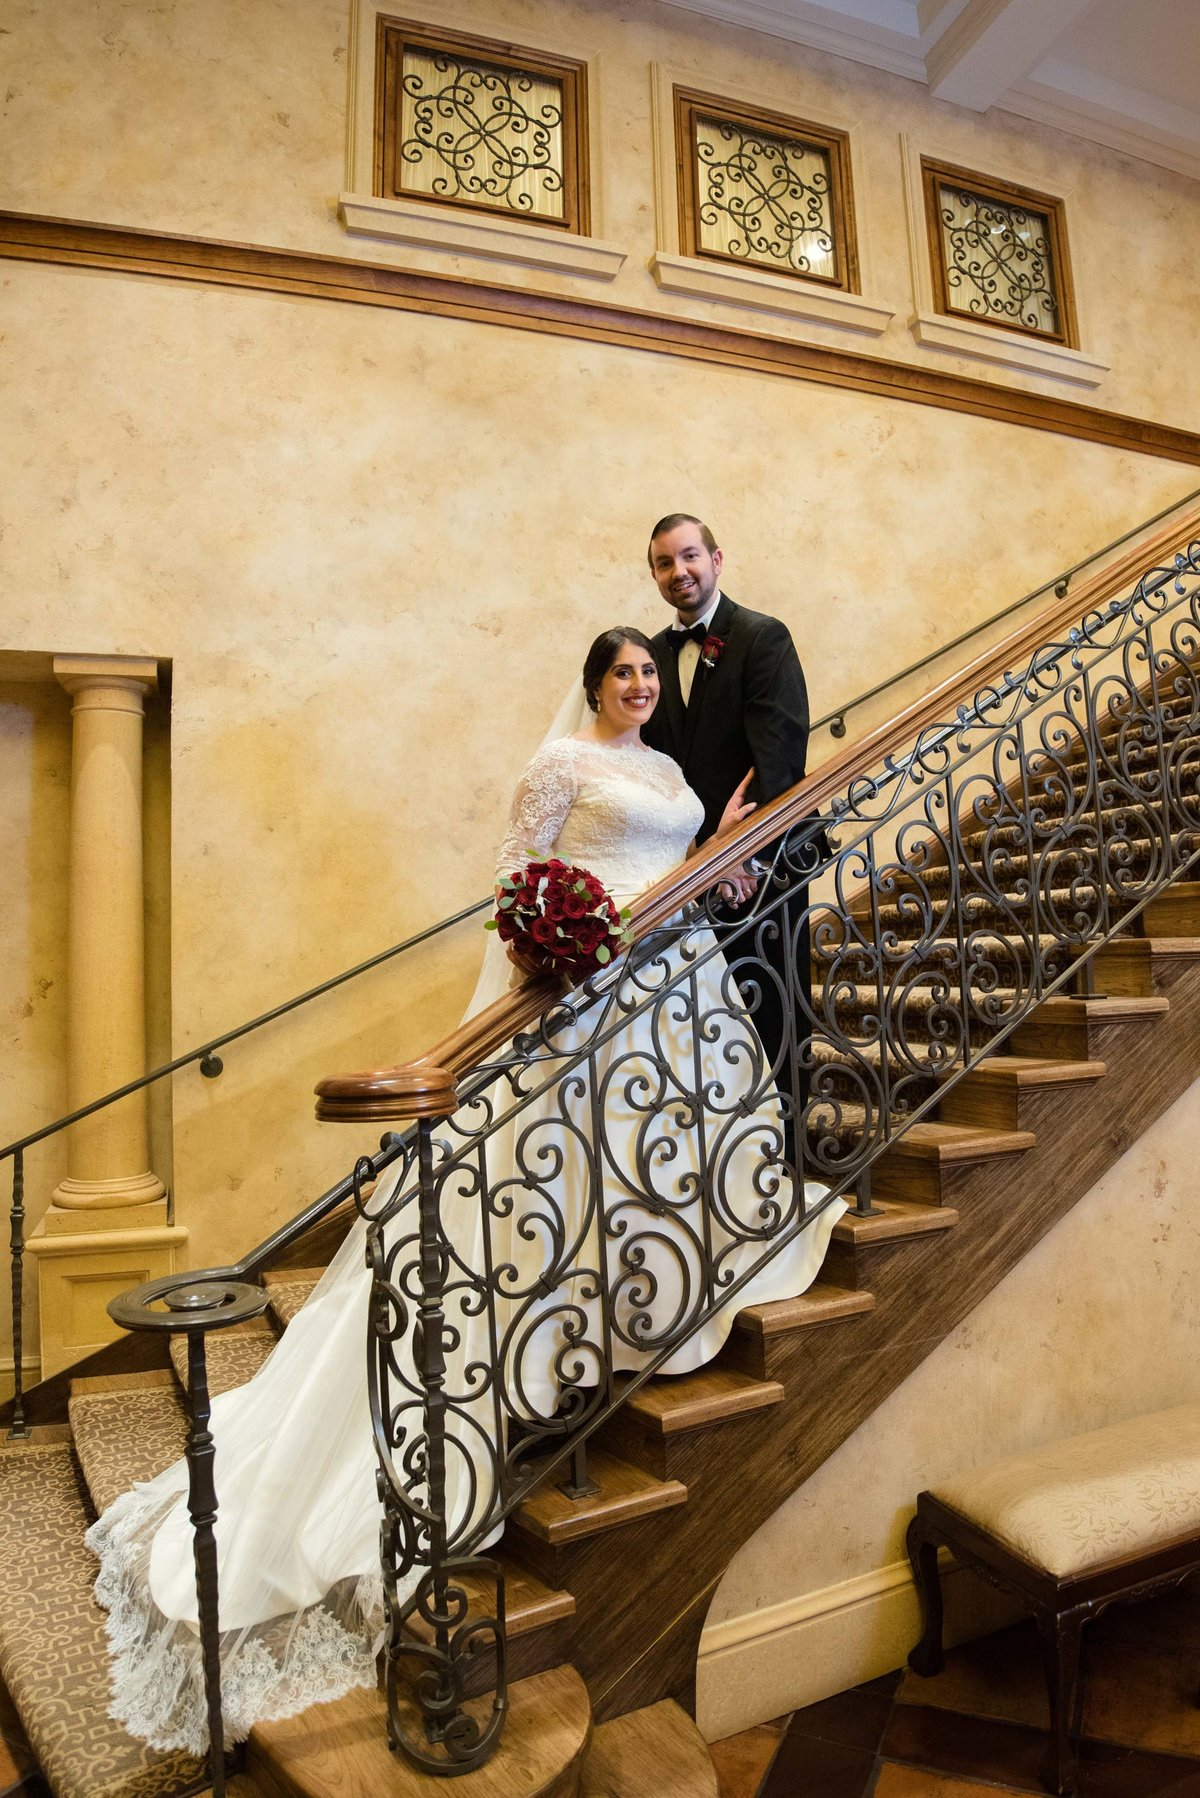 Larkfield Manor staircase photo